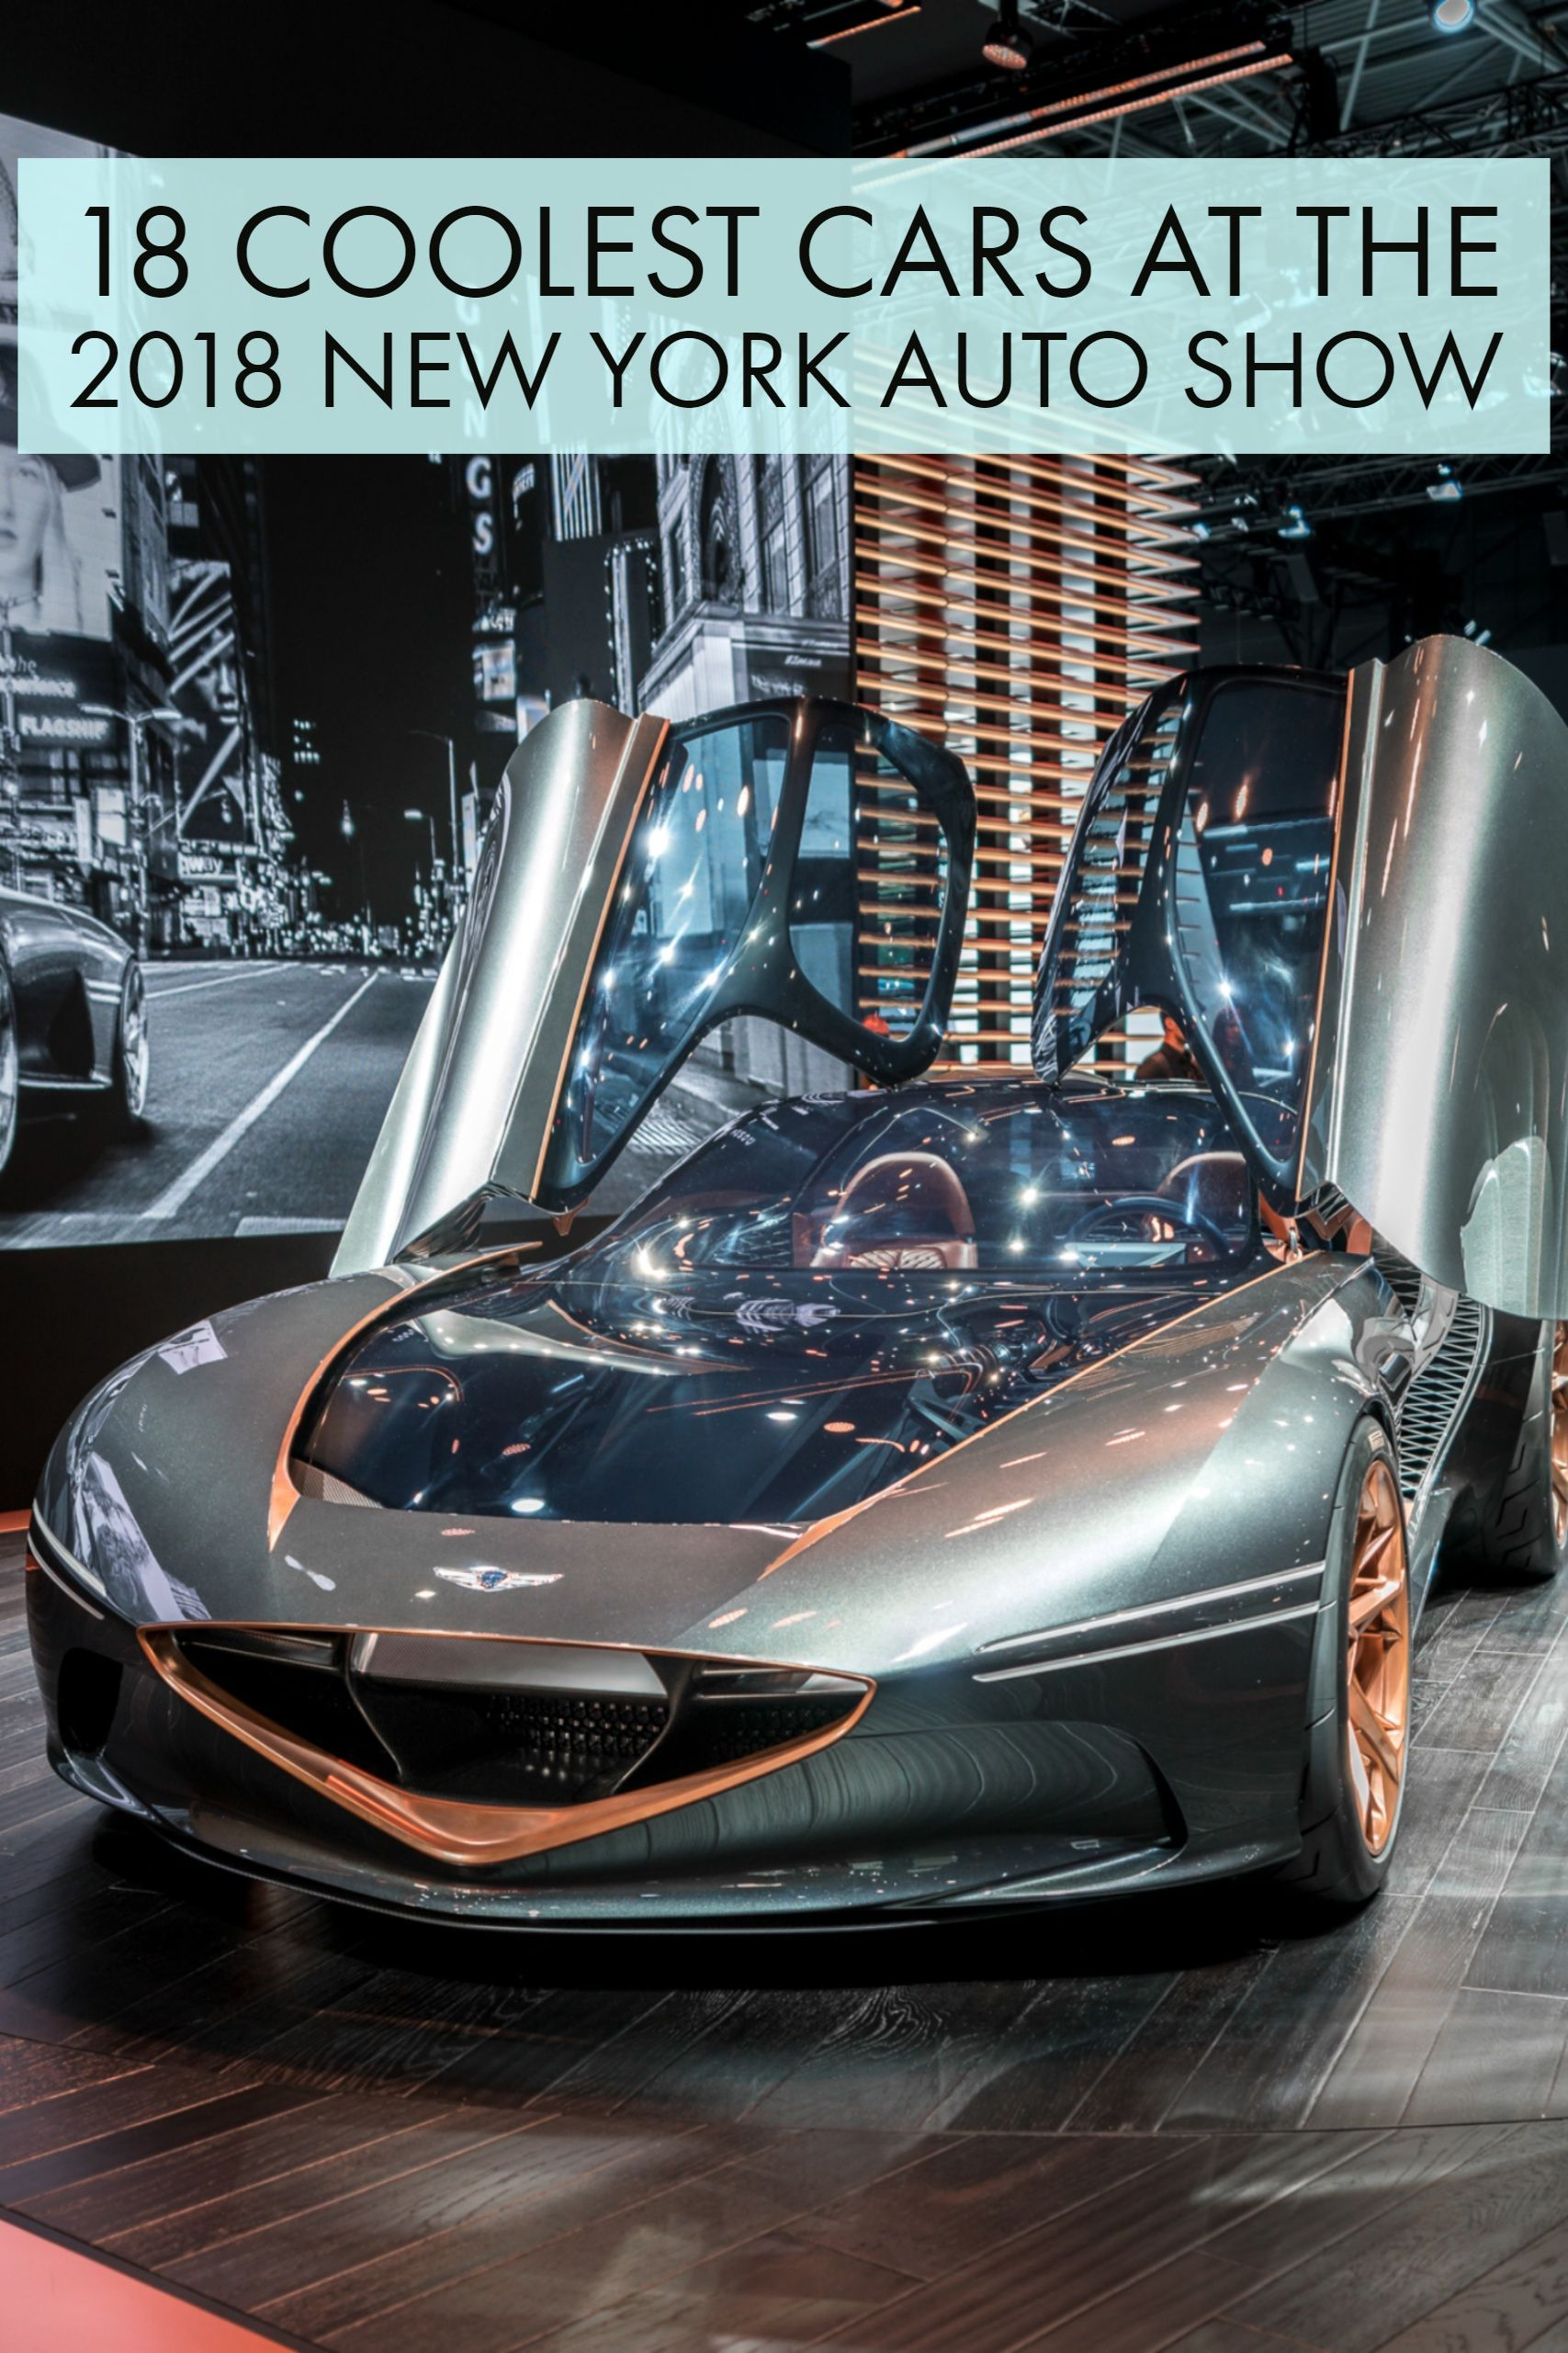 The Coolest Cars At The 2018 New York Auto Show With Images